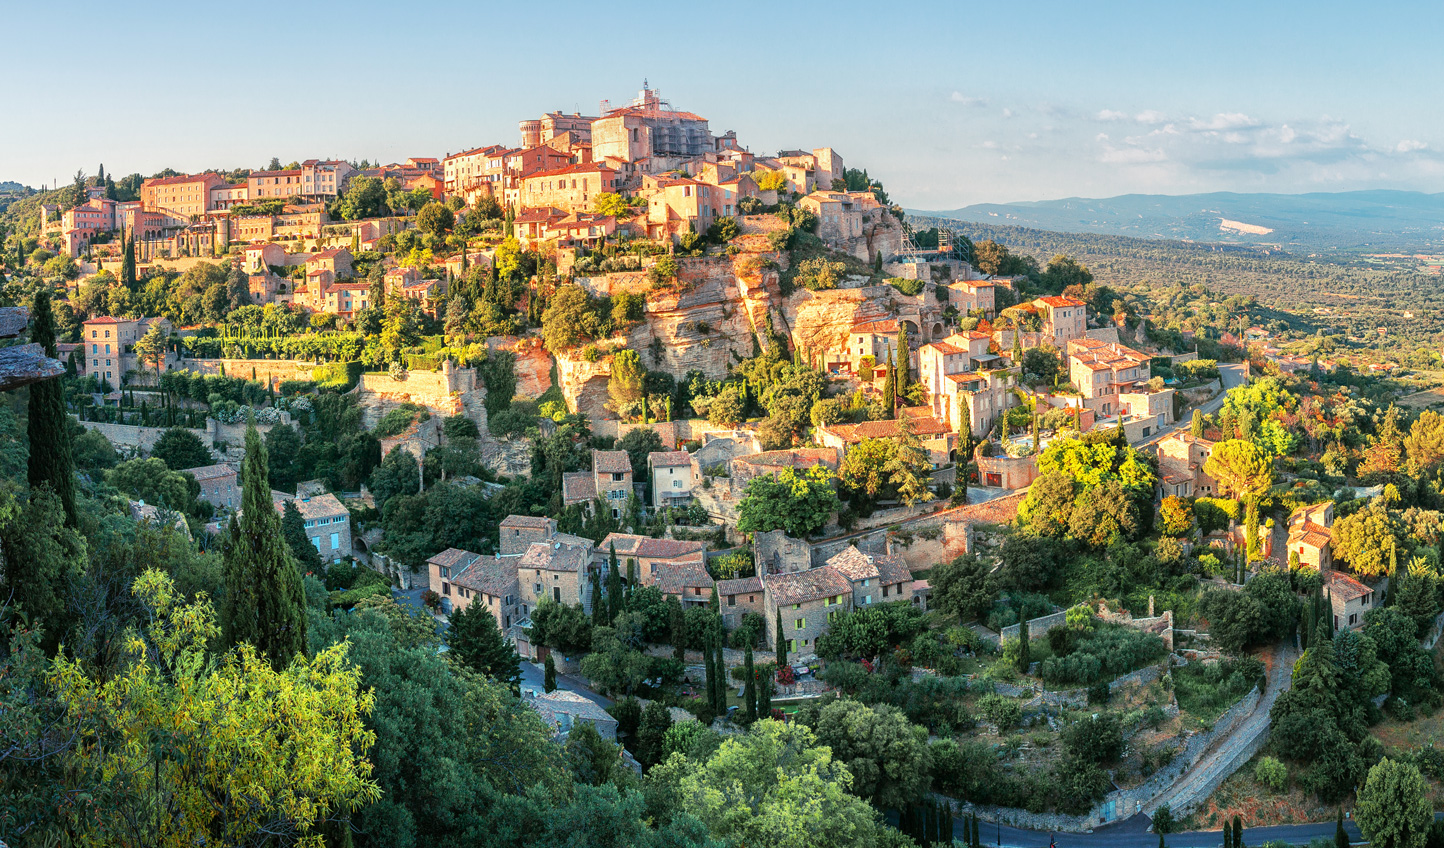 Take in the Provencal charm of Gordes